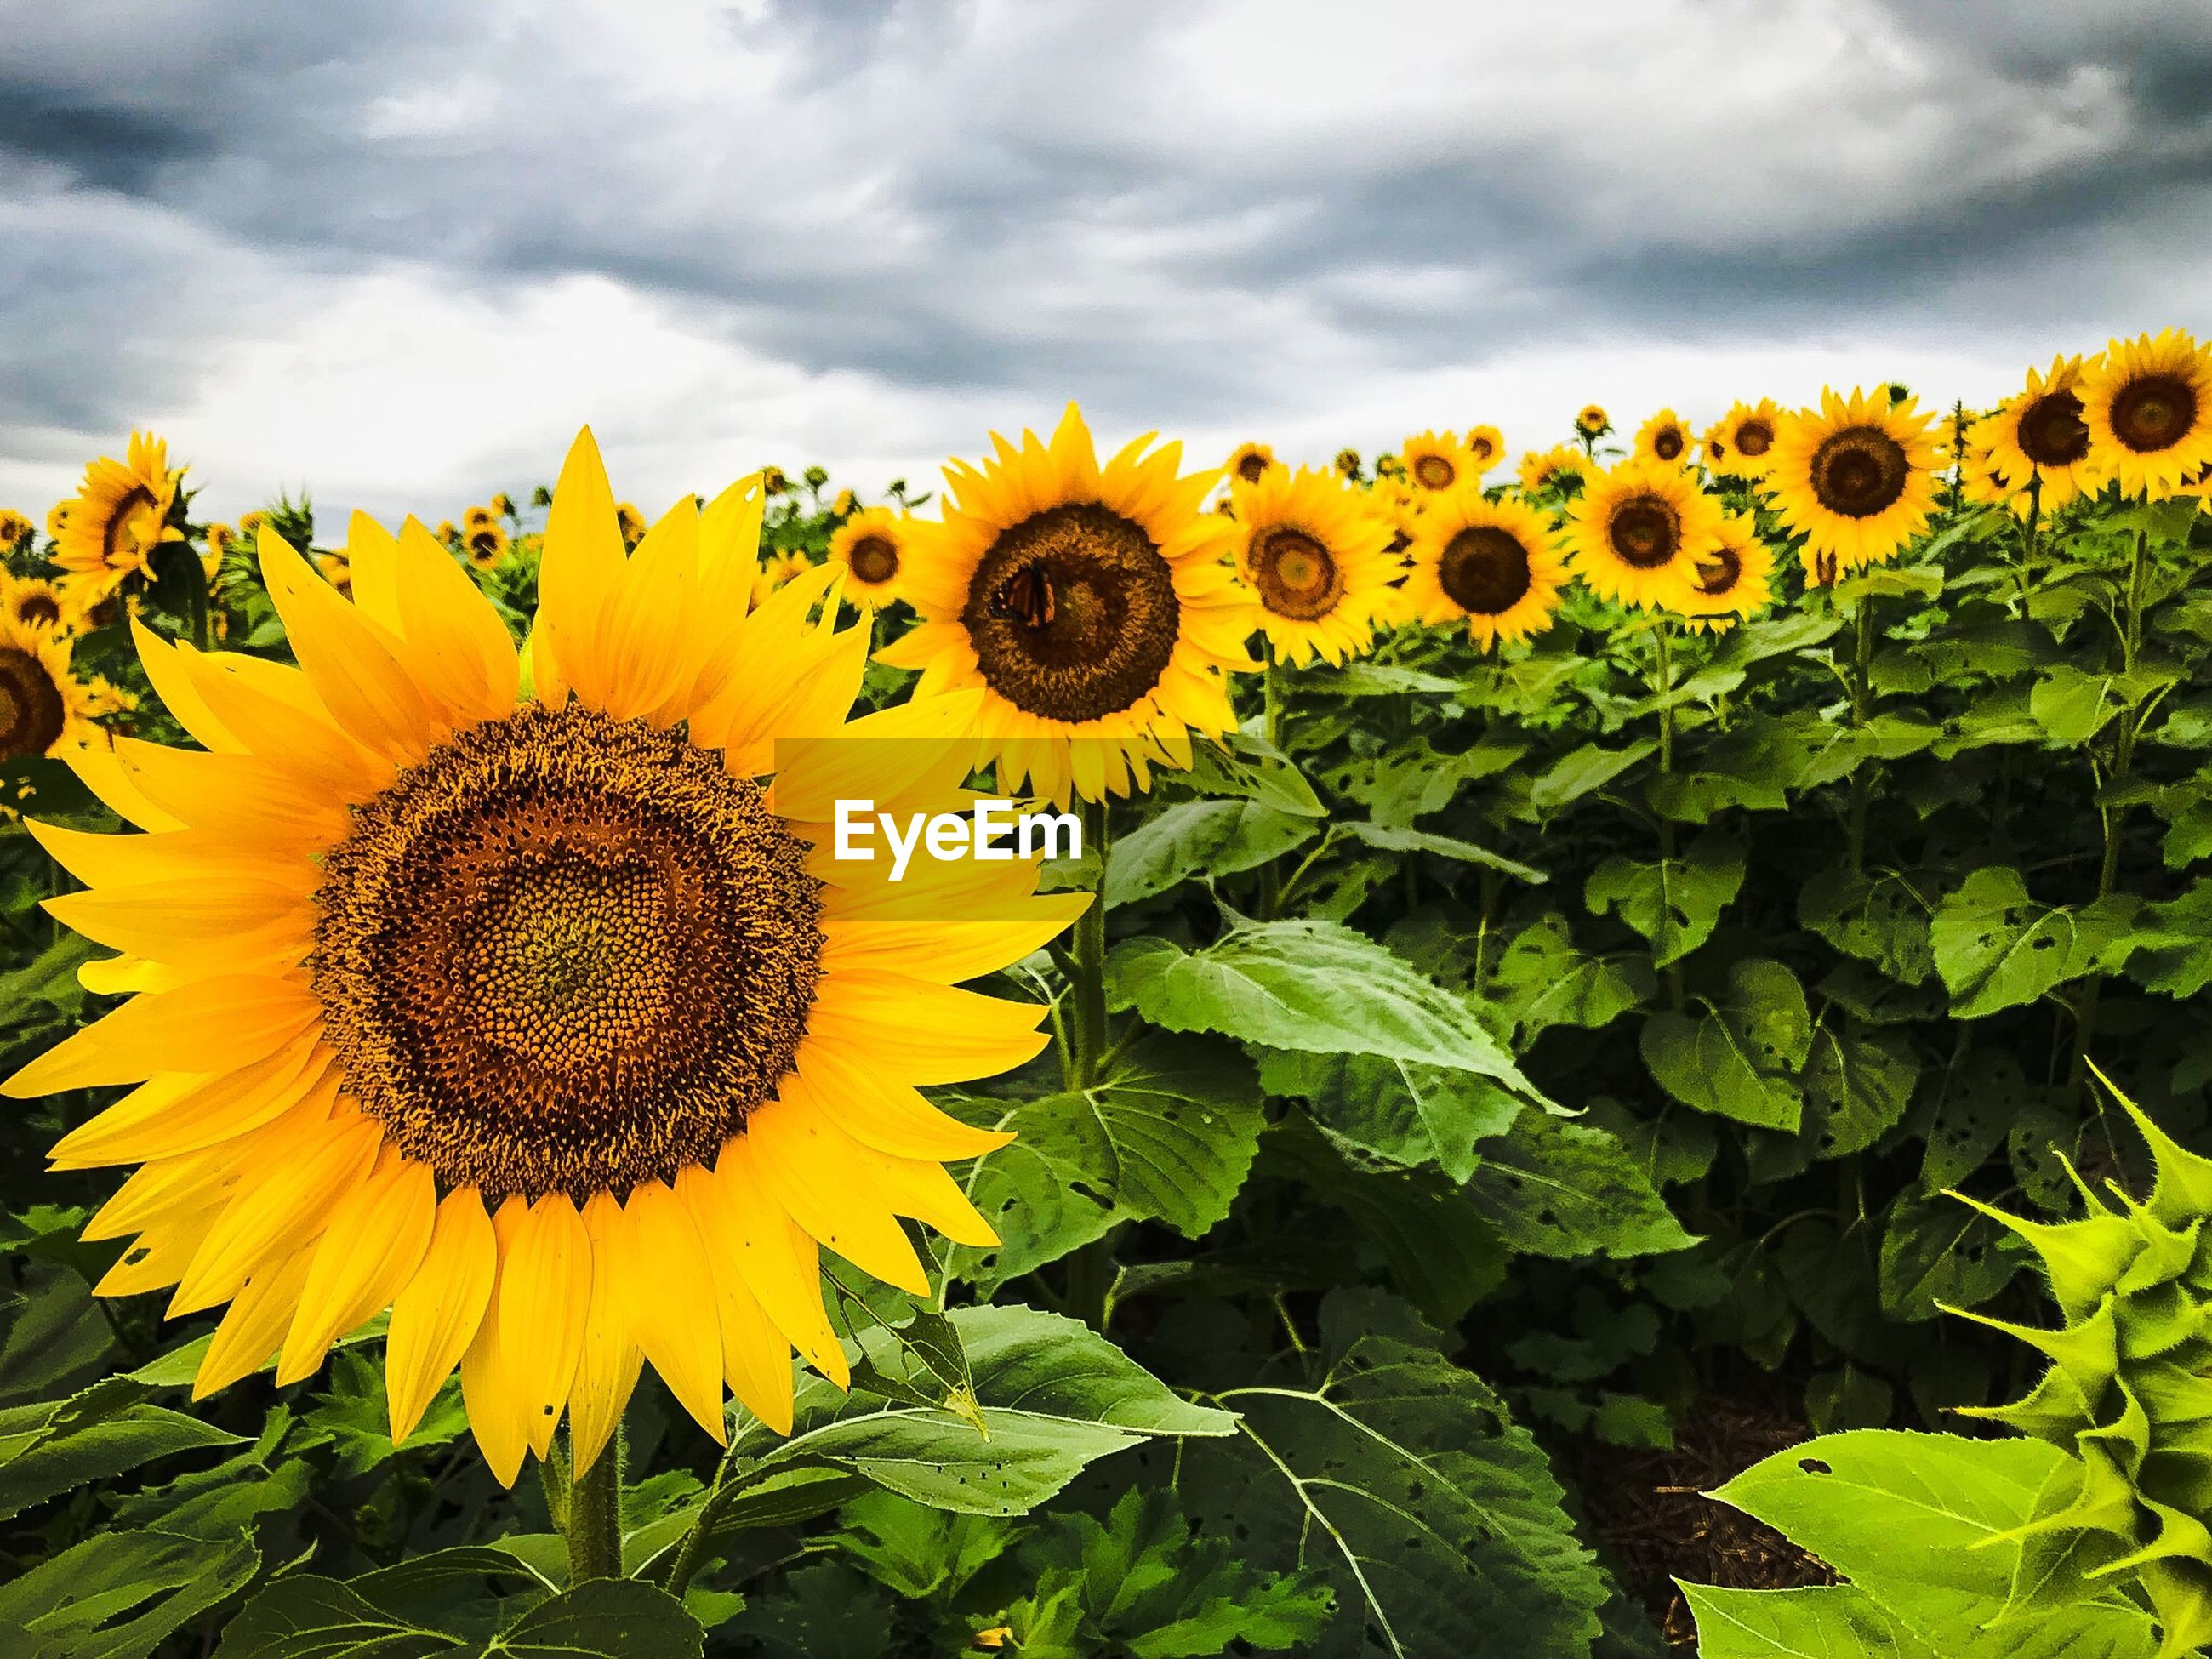 CLOSE-UP OF SUNFLOWER AGAINST YELLOW FLOWERING PLANTS